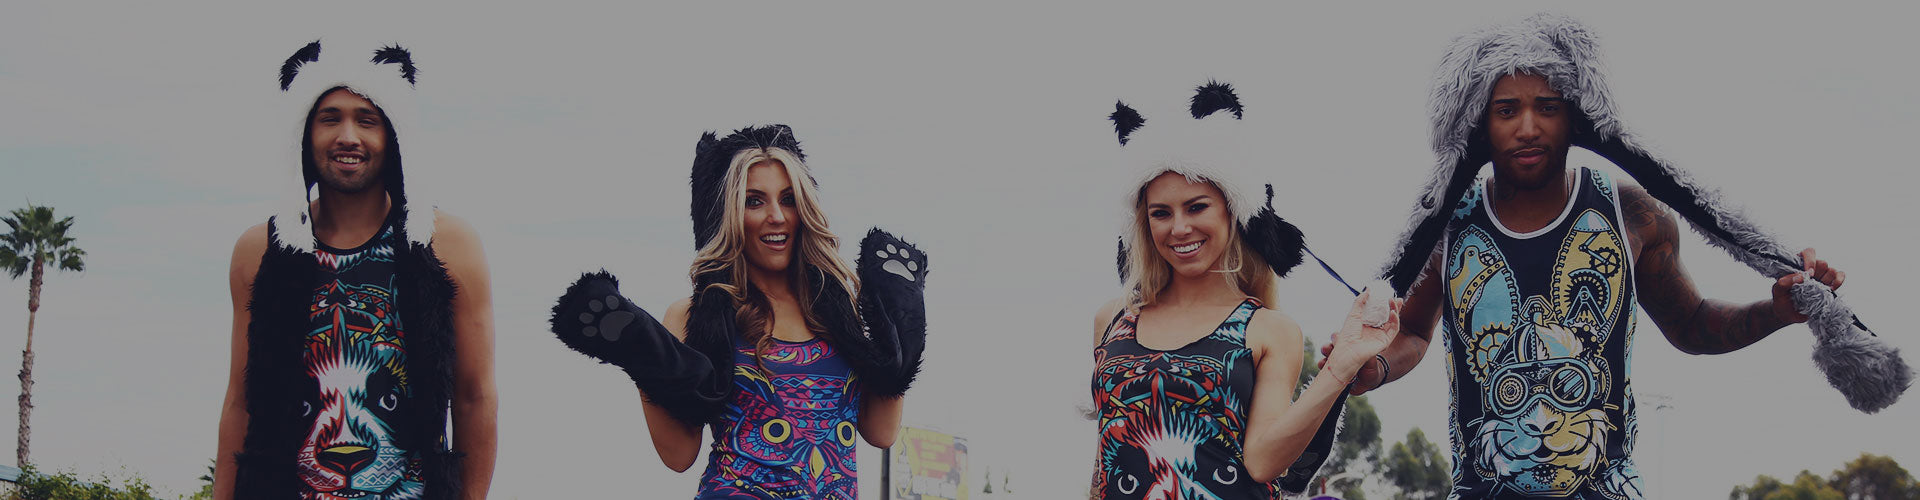 faux fur animal hats for raves